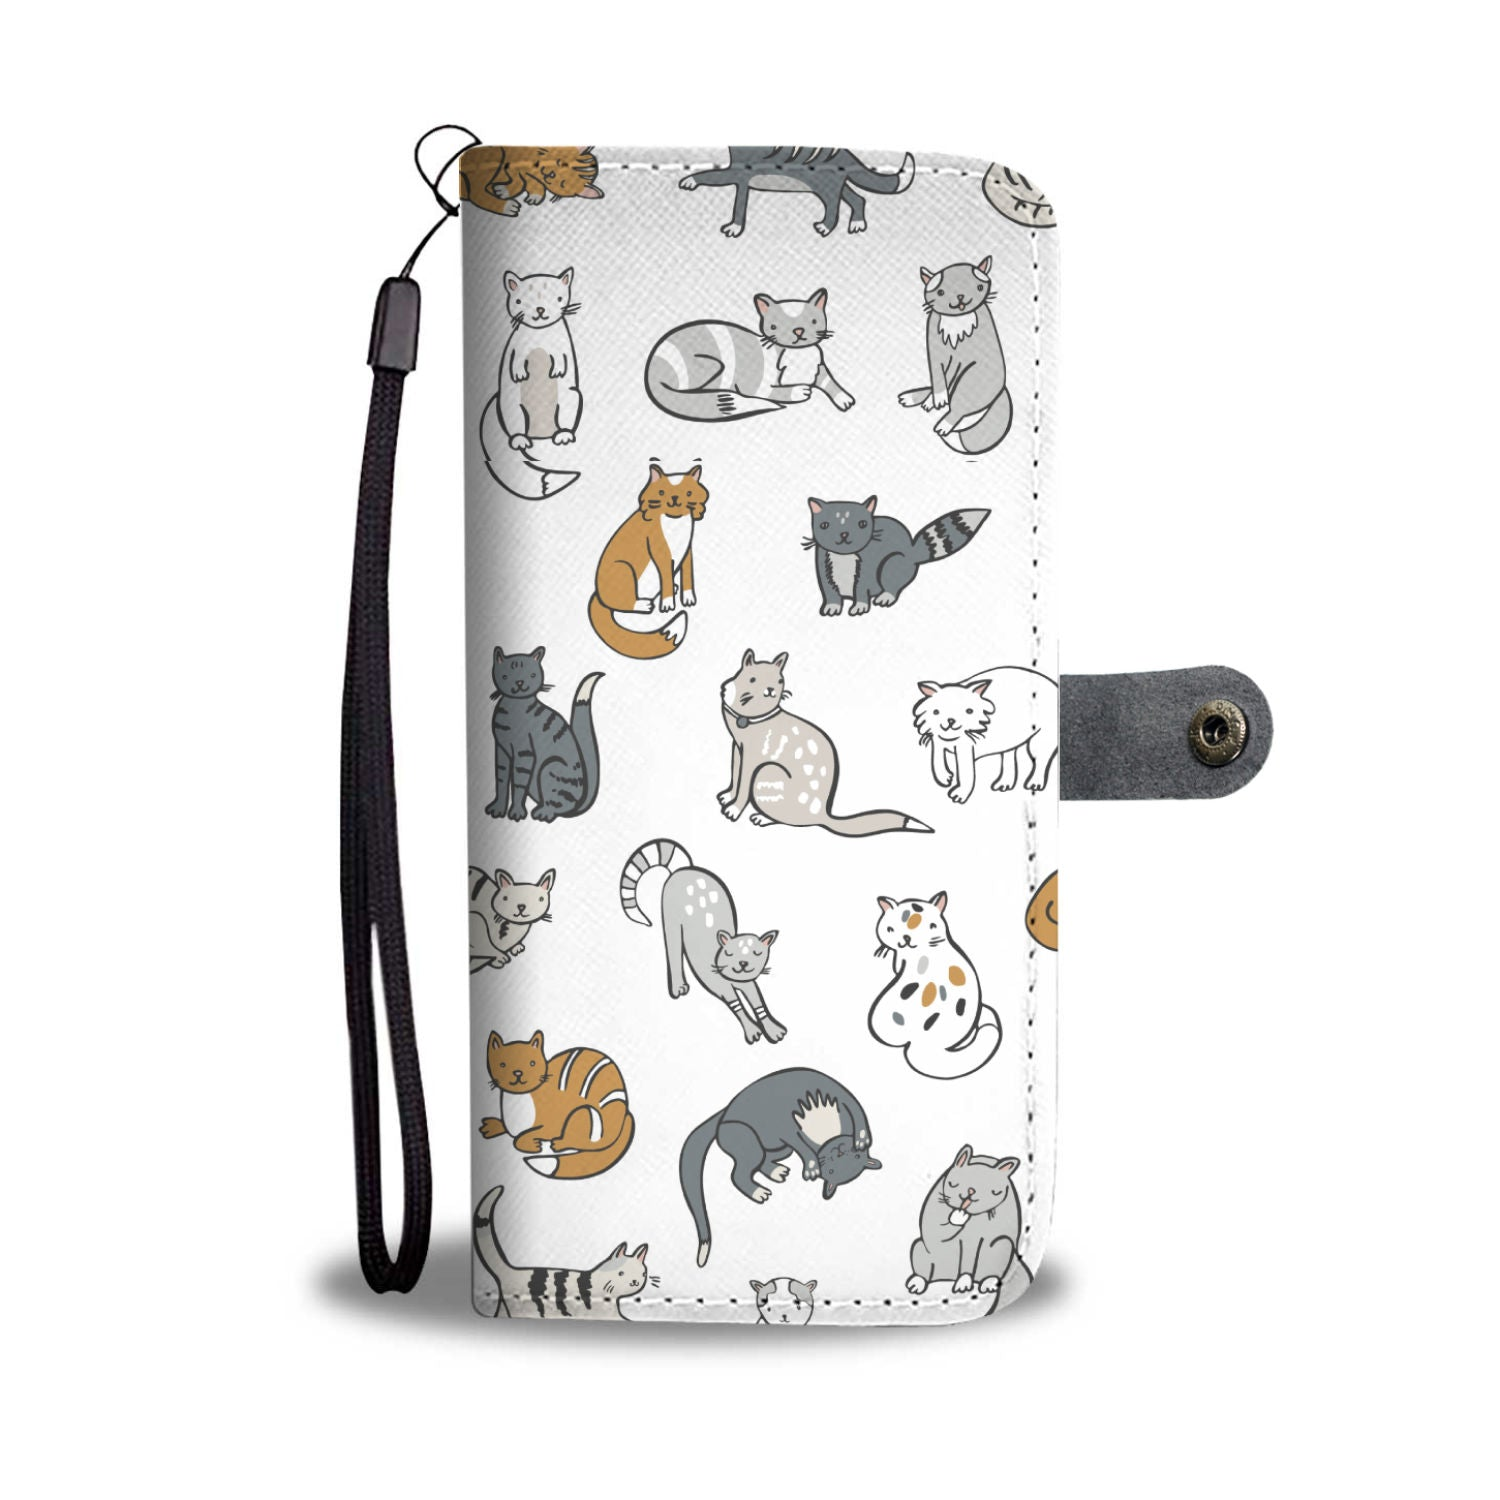 Cats Wallet - Hello Moa